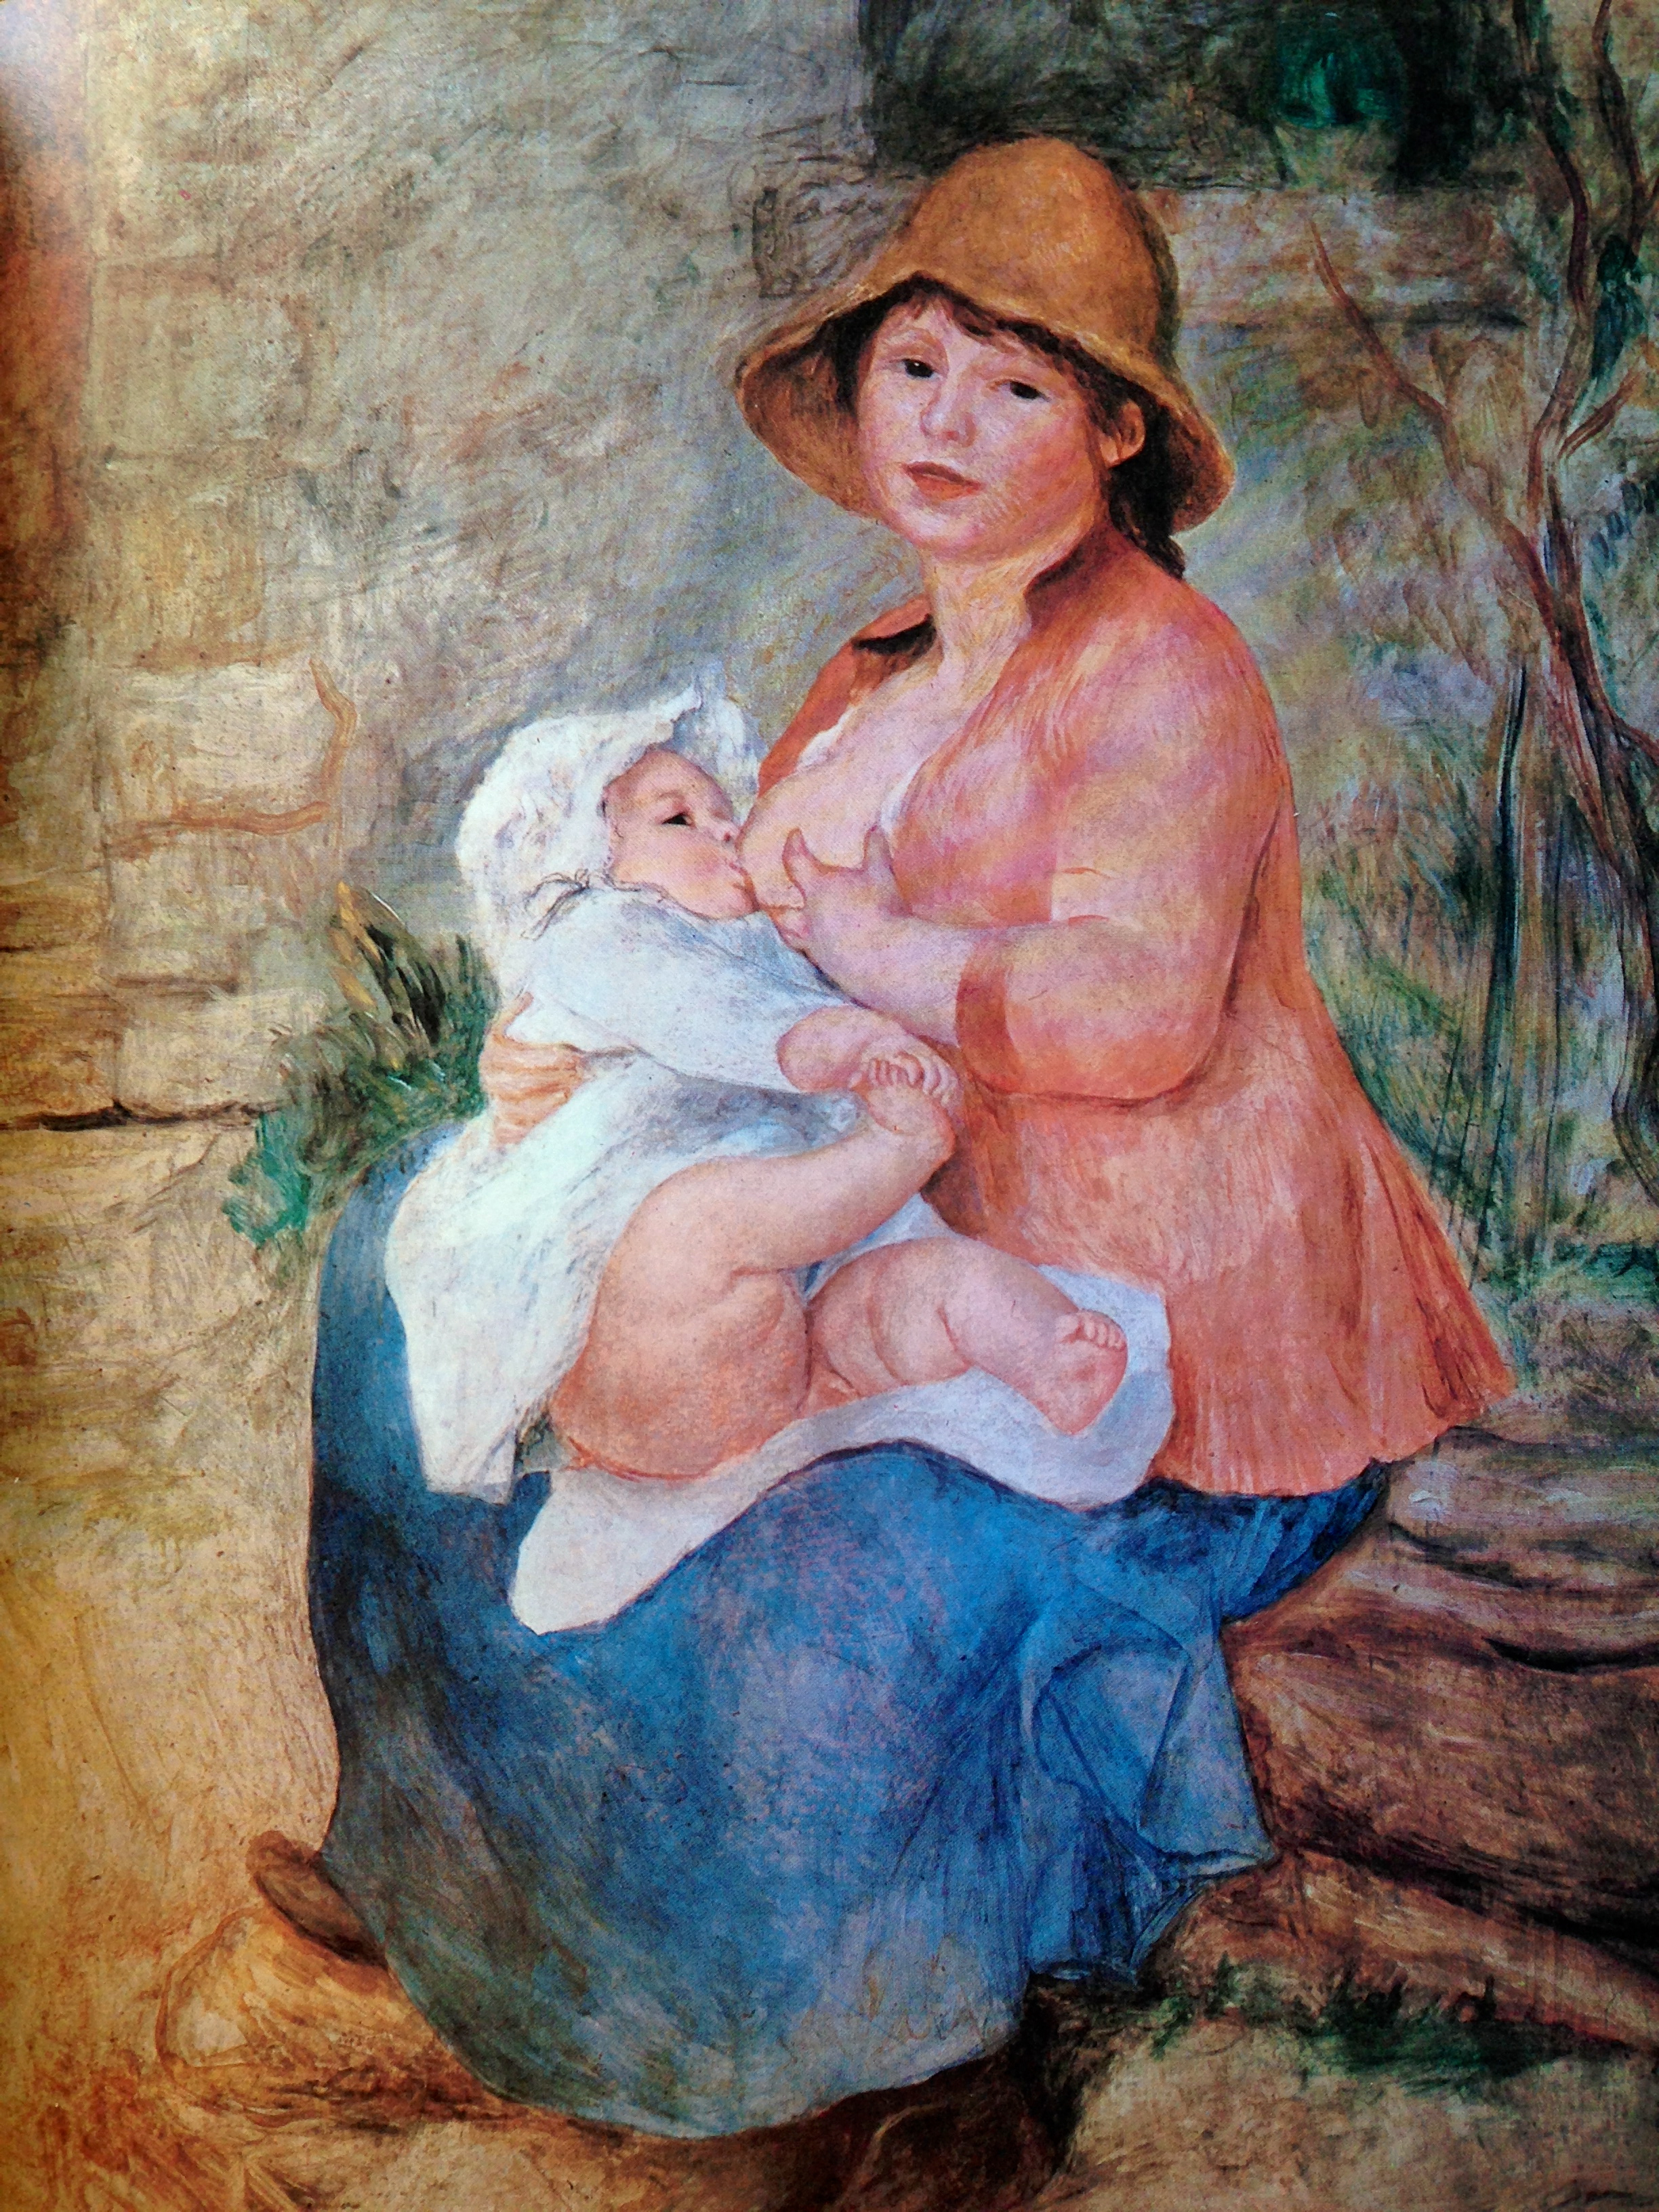 Breastfeeding Renoir- Natural Parenting in Art